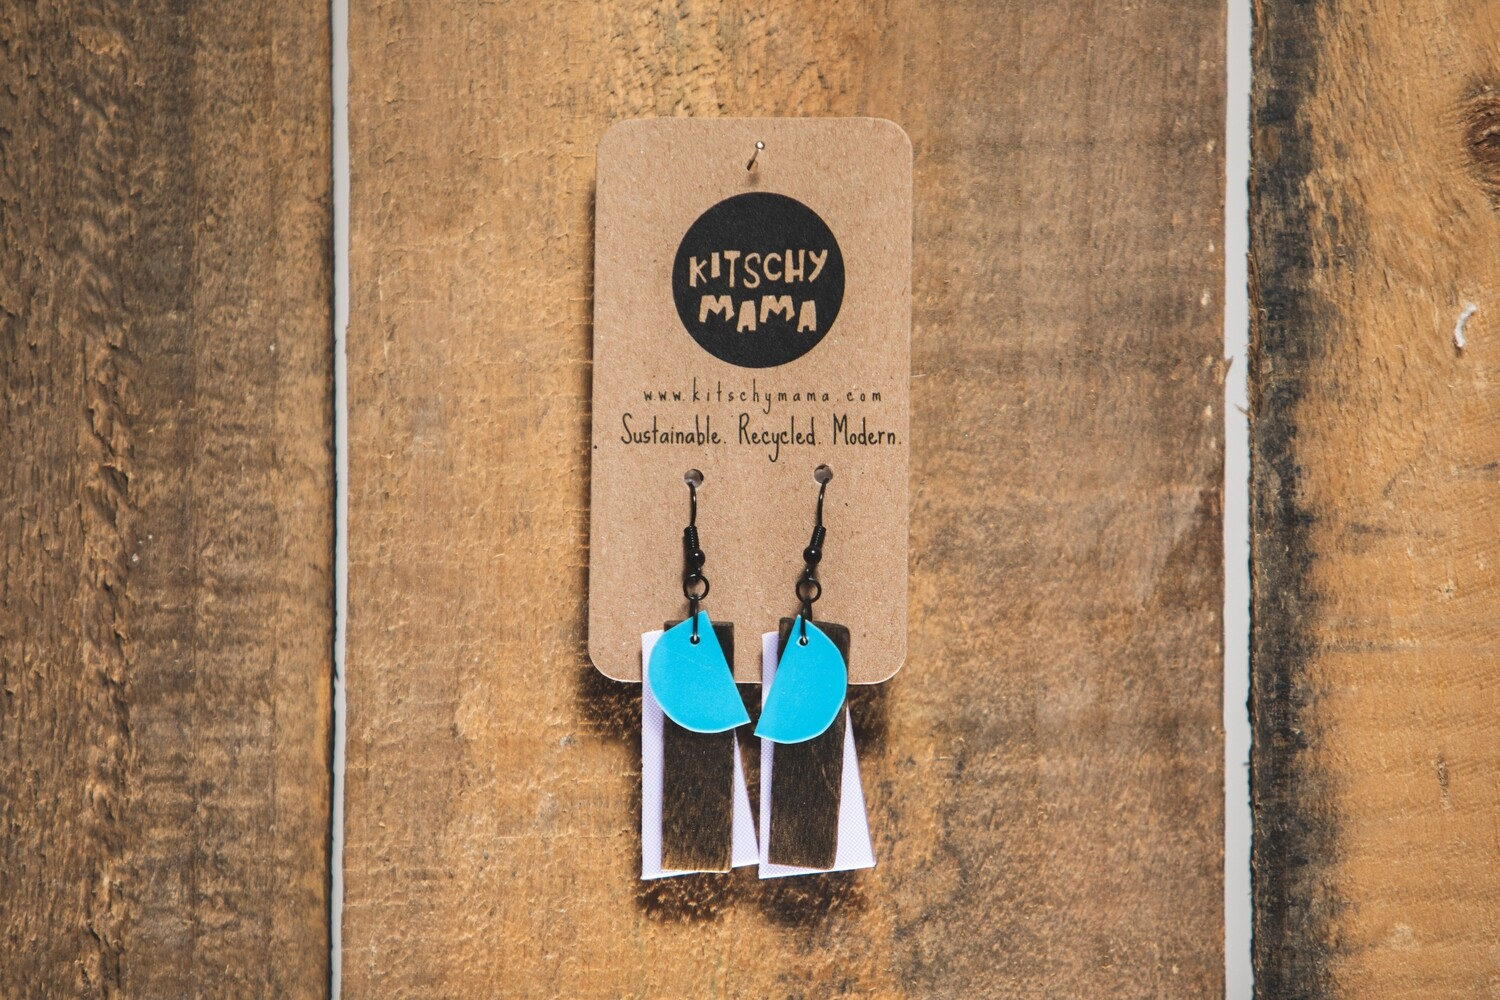 Kitschy Mama Earrings White and Turq